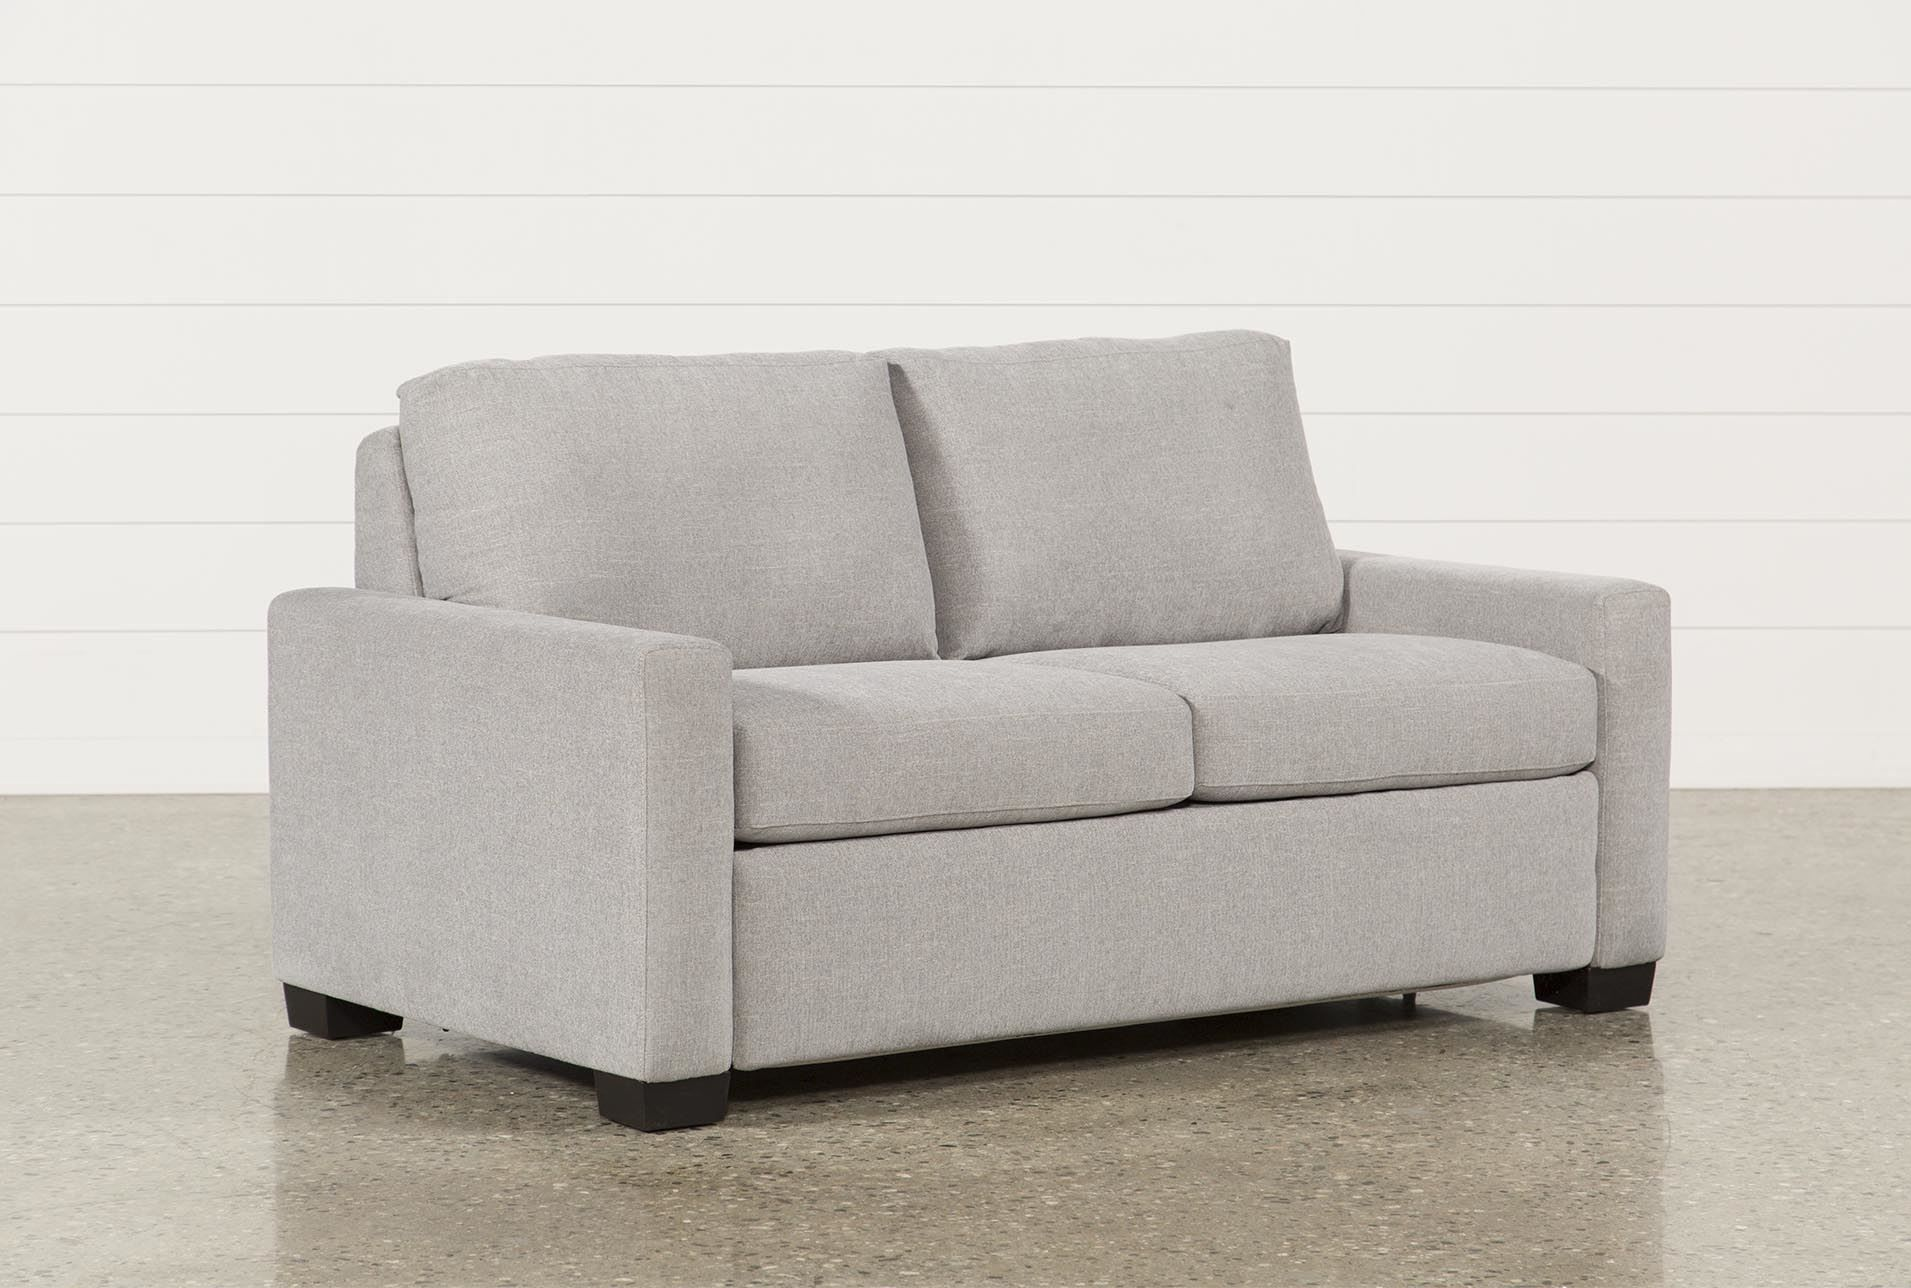 Tilly Fabric Sofa Queen Sleeper Mackenzie Silverpine Full Sofa Sleeper Office Seating Queen